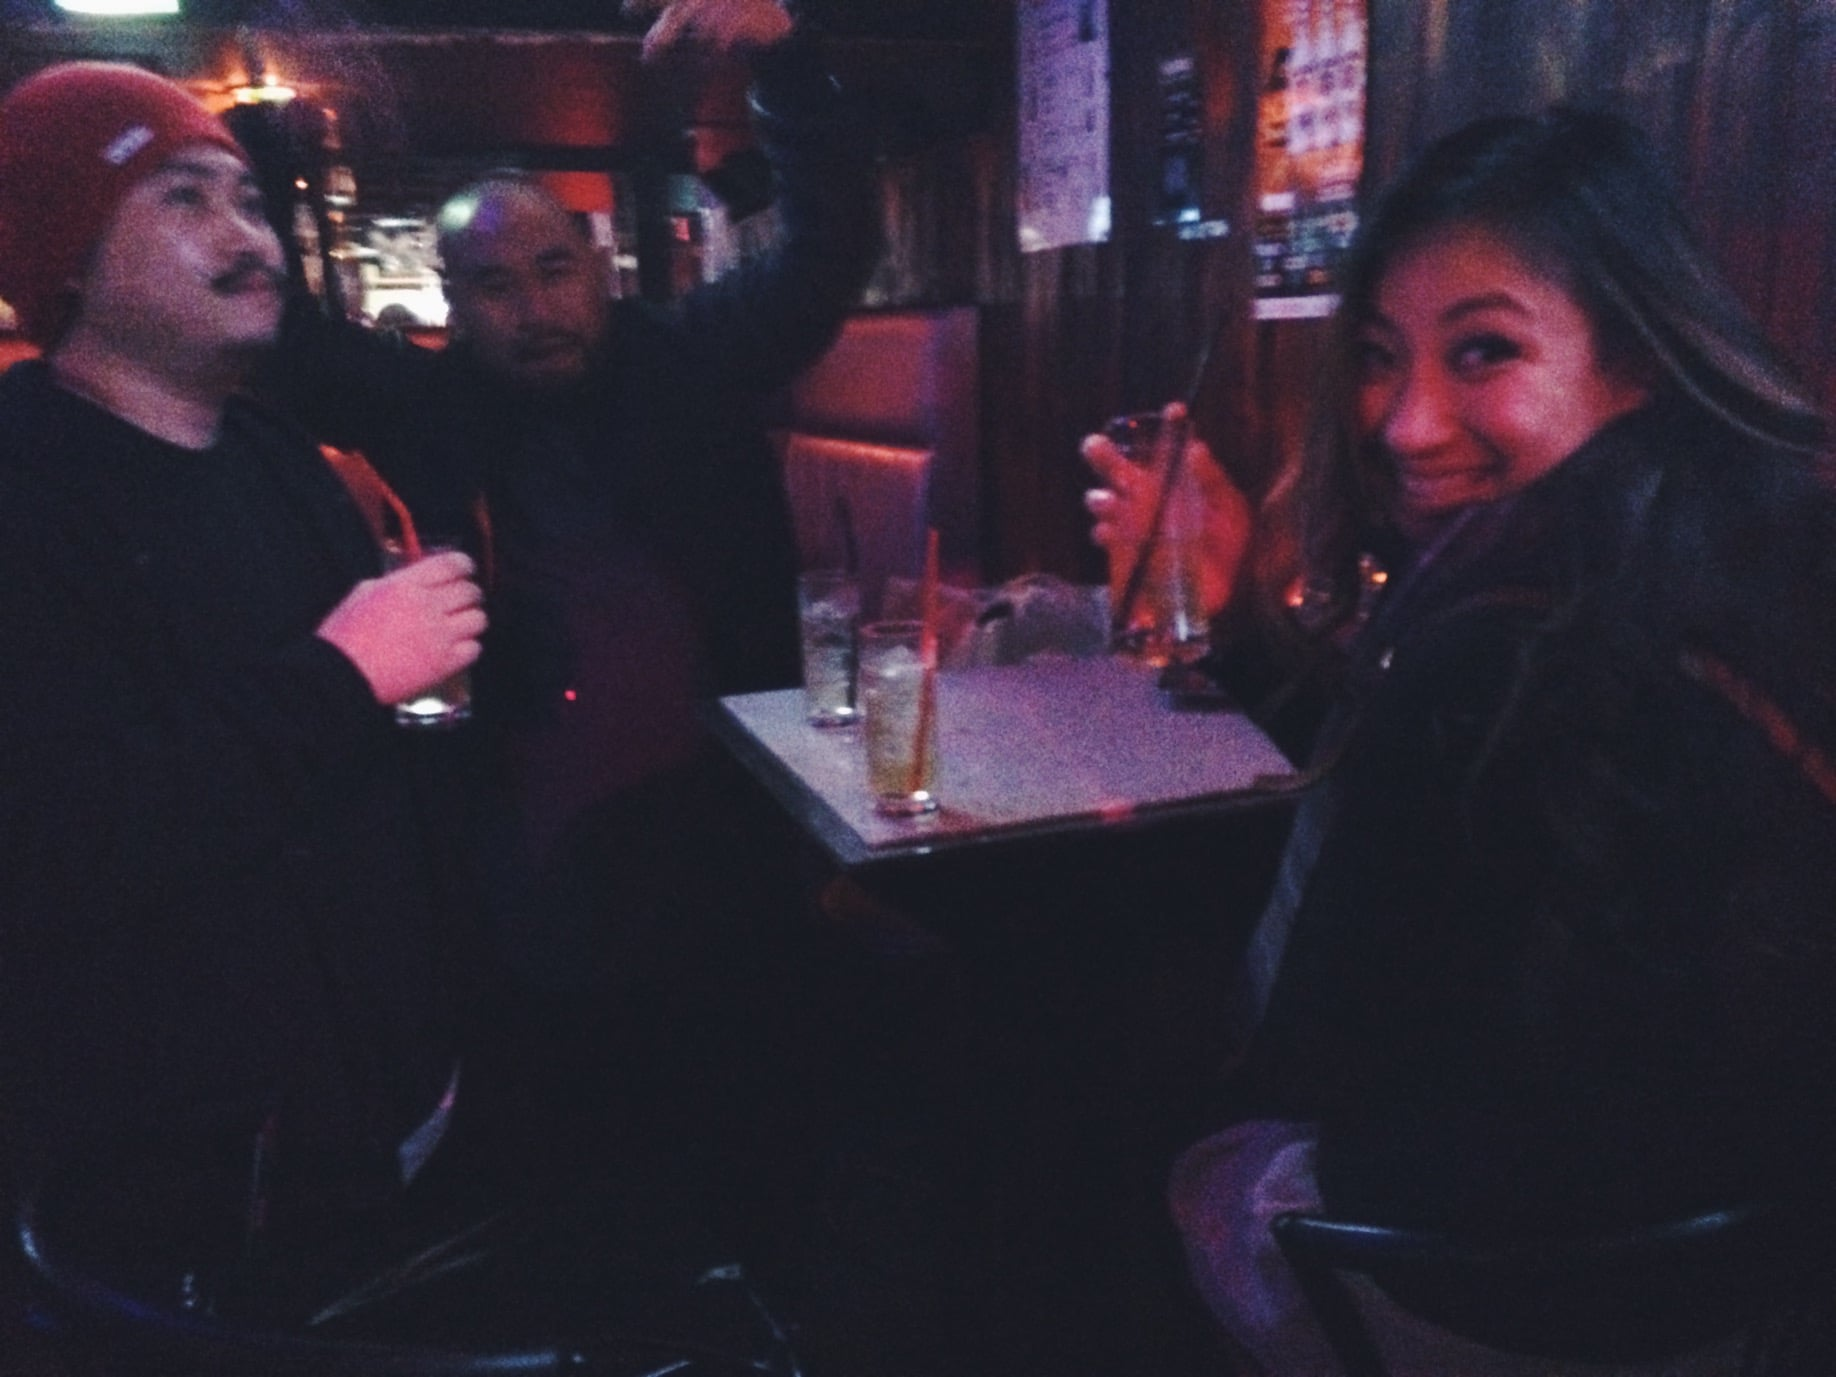 We heard loud american music from a bar so we thought it was poppin'. We were wrong, it was just us in the small as bar lol.